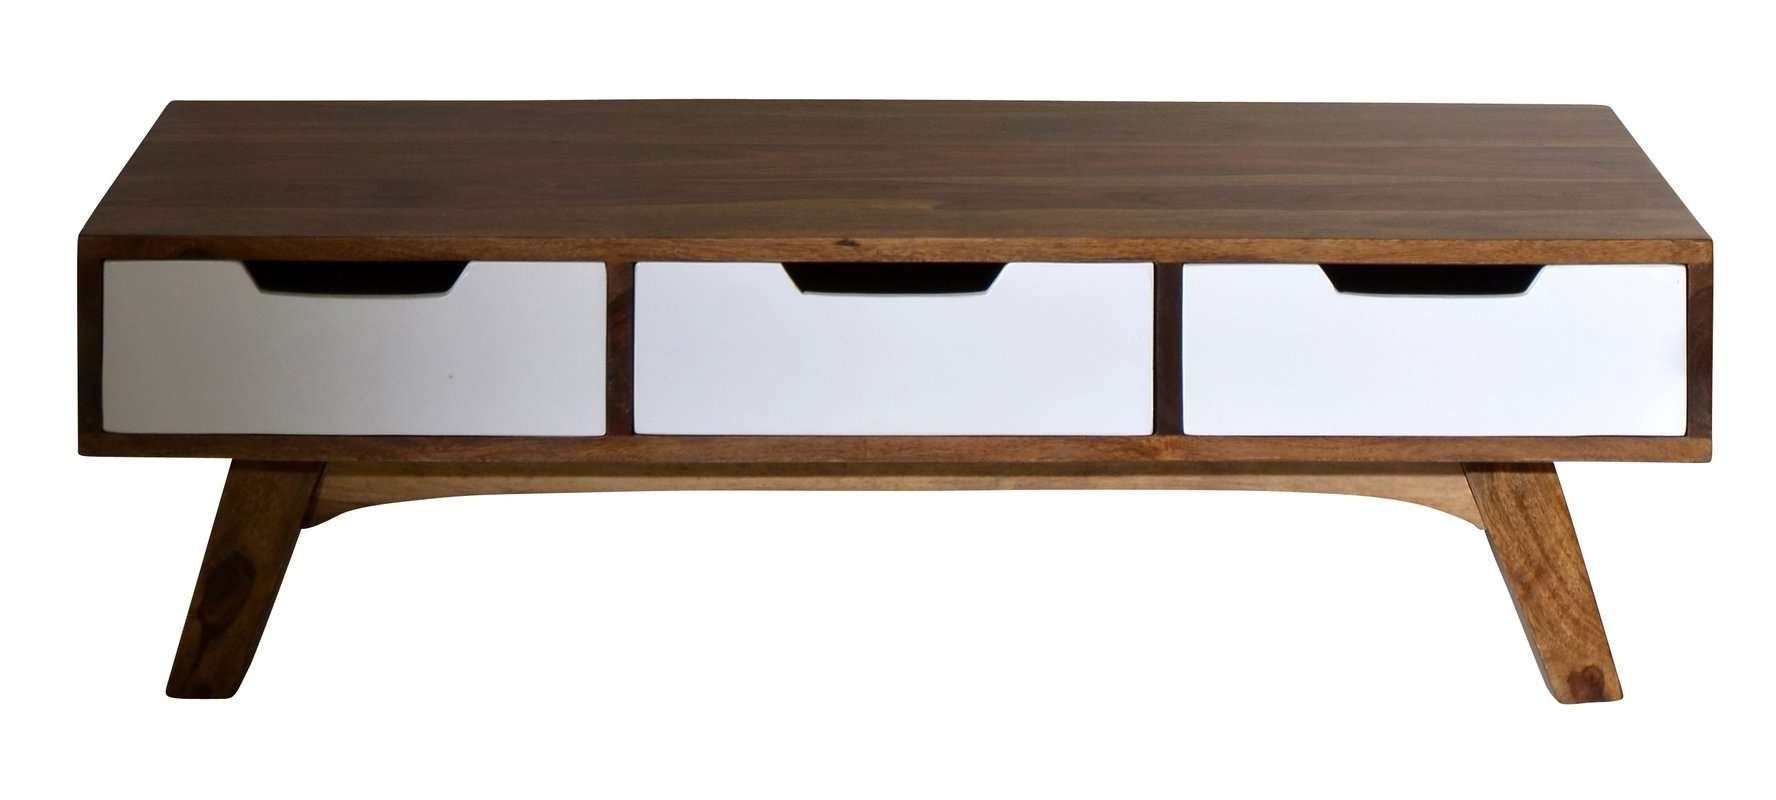 Preferred Sixties Coffee Tables For Sit Möbel Sixties Coffee Table & Reviews (View 3 of 20)